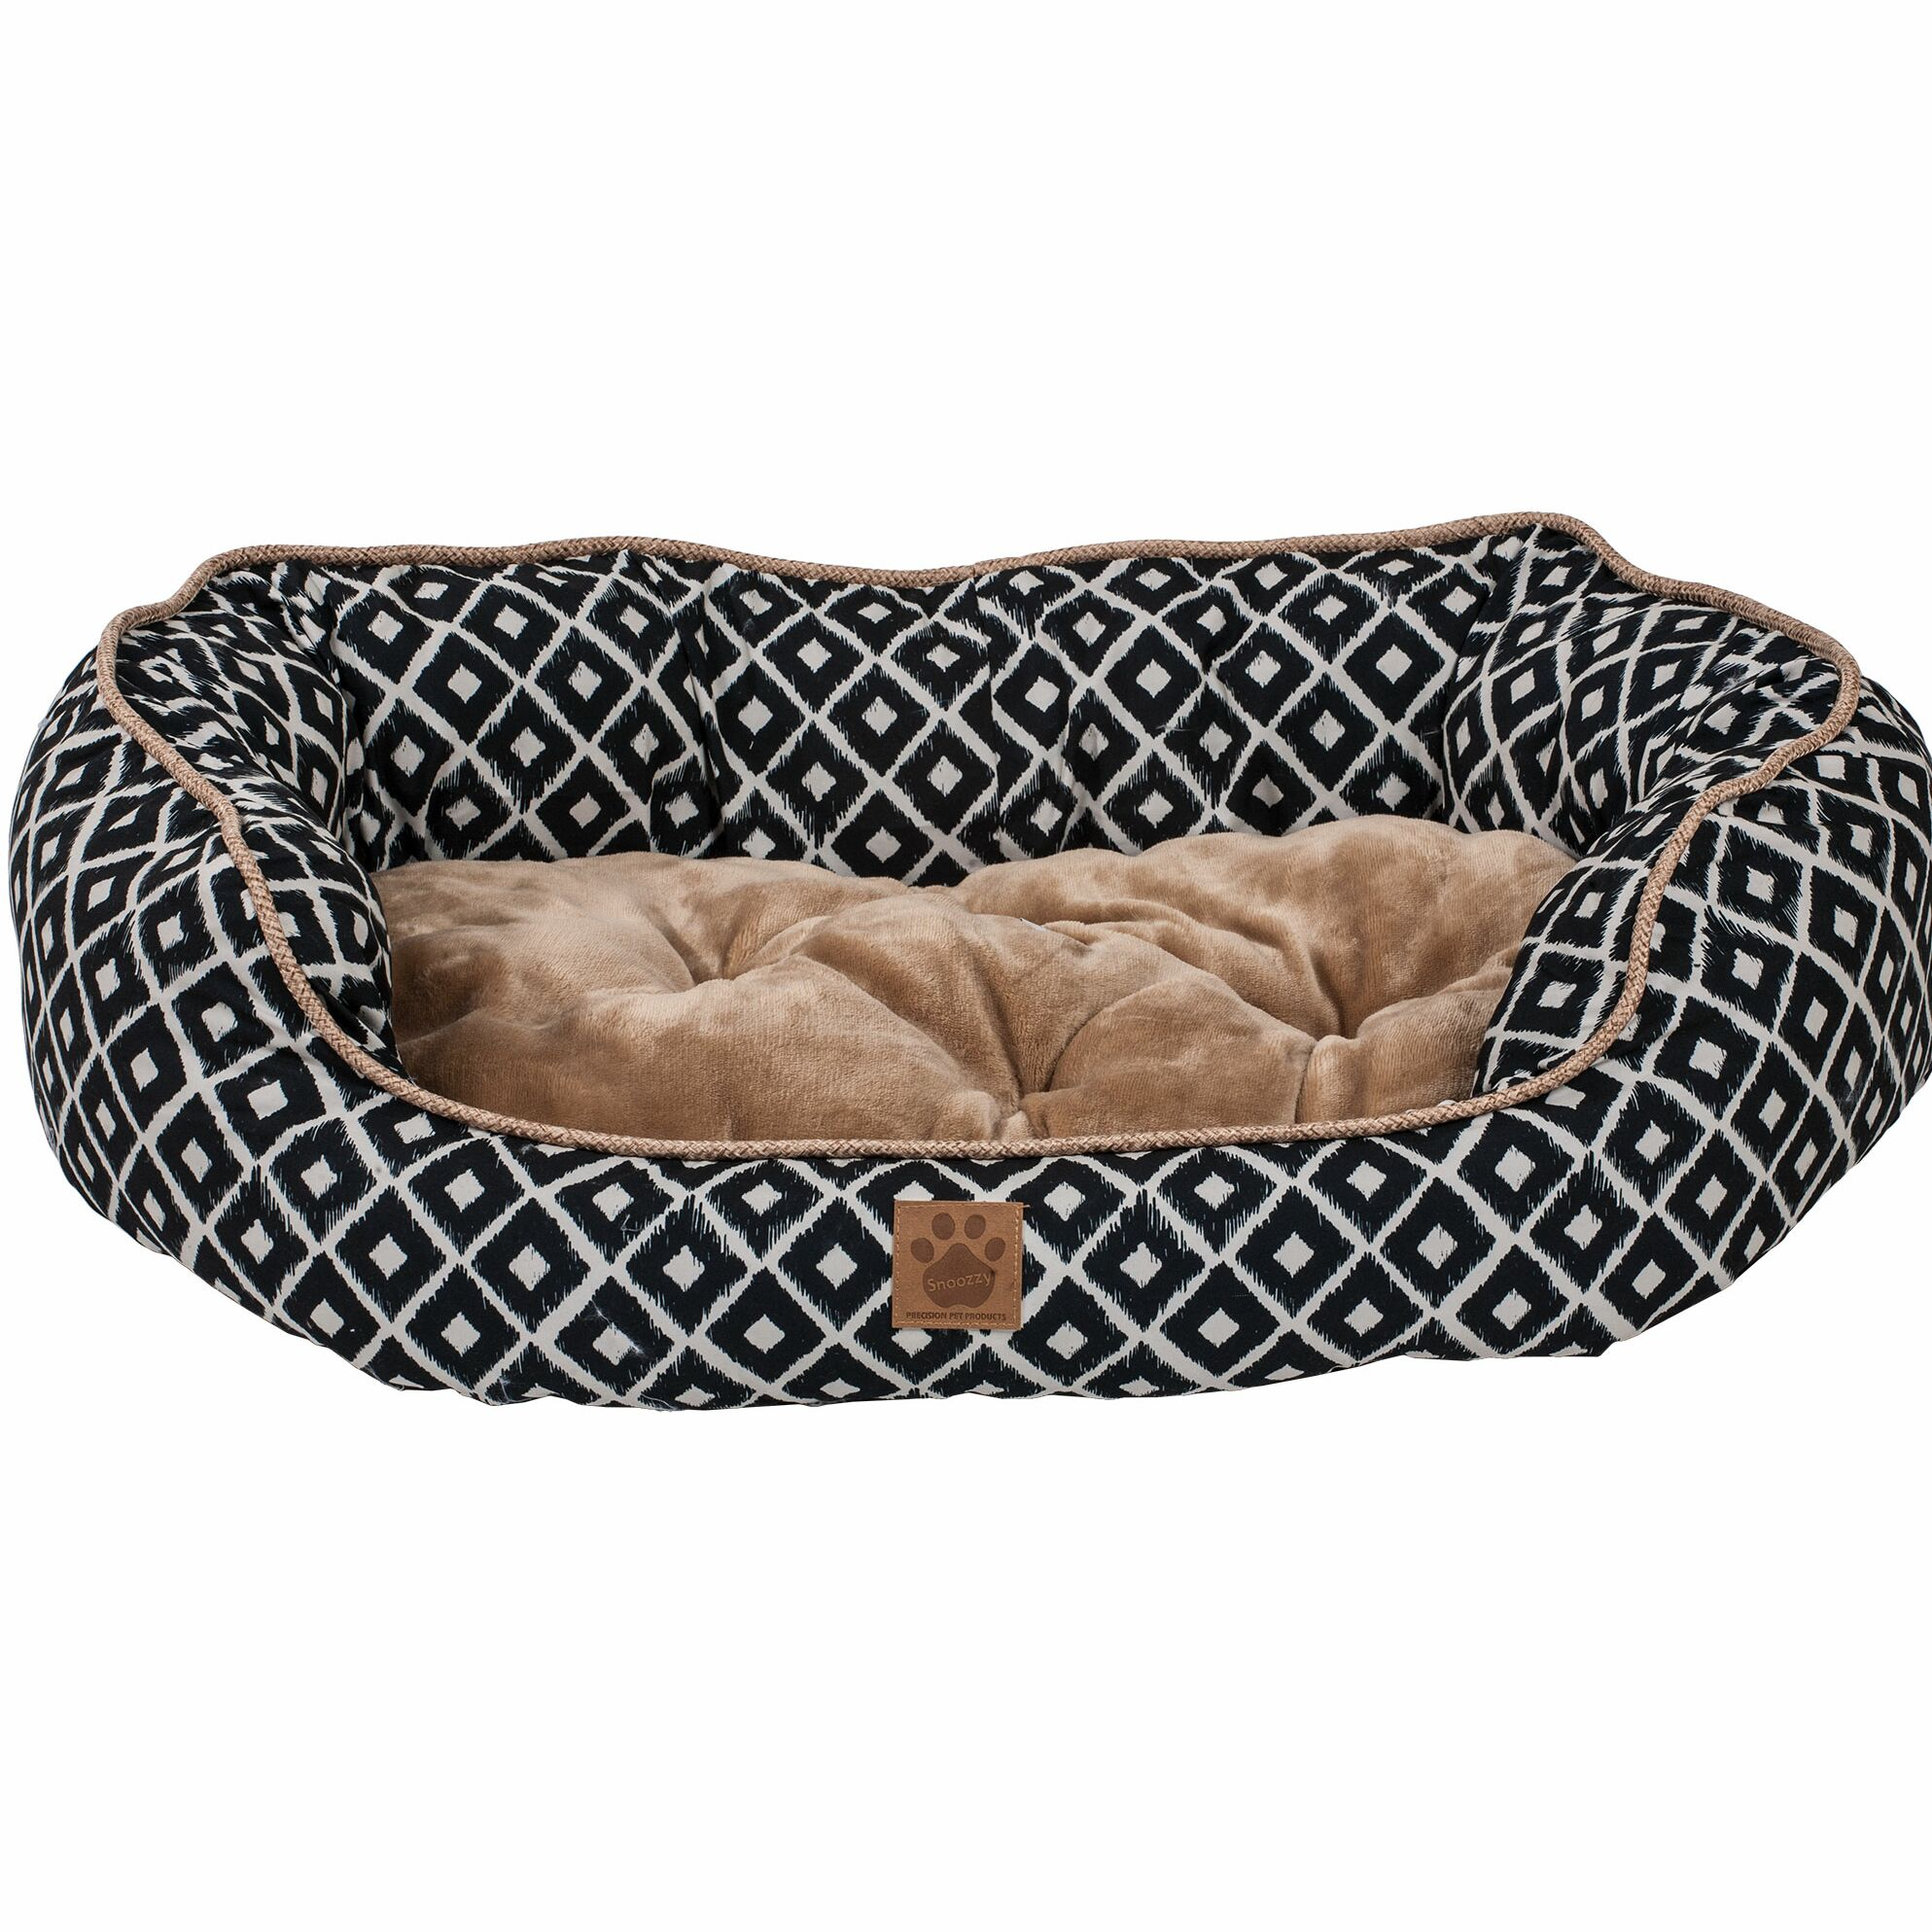 Maggiemae Ikat Daydreamer Bed Color: Navy, Size: Small (26